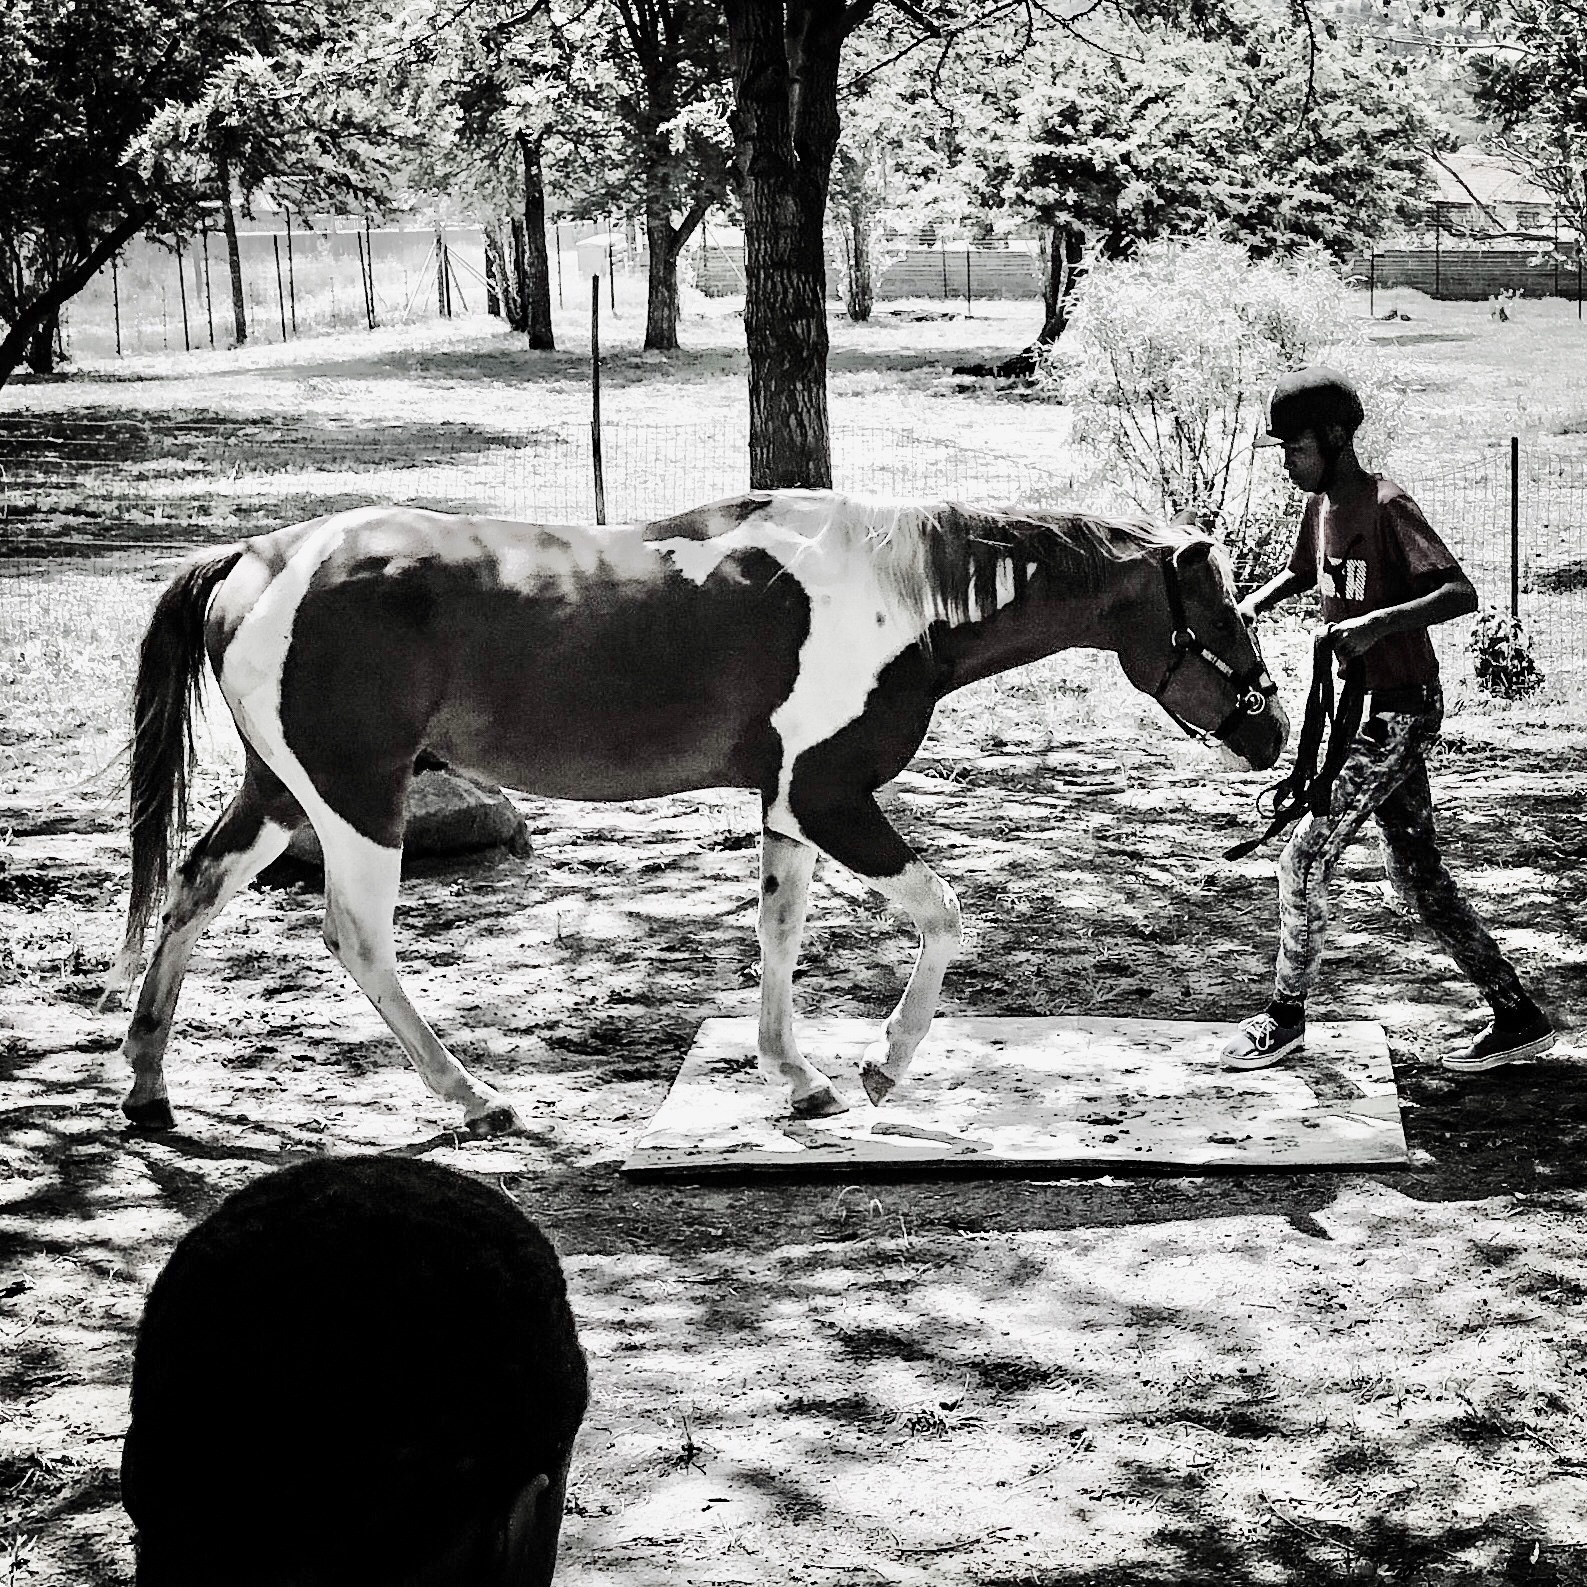 Lead-Up South Africa - Equine-Assisted Therapy programs for vulnerable youth